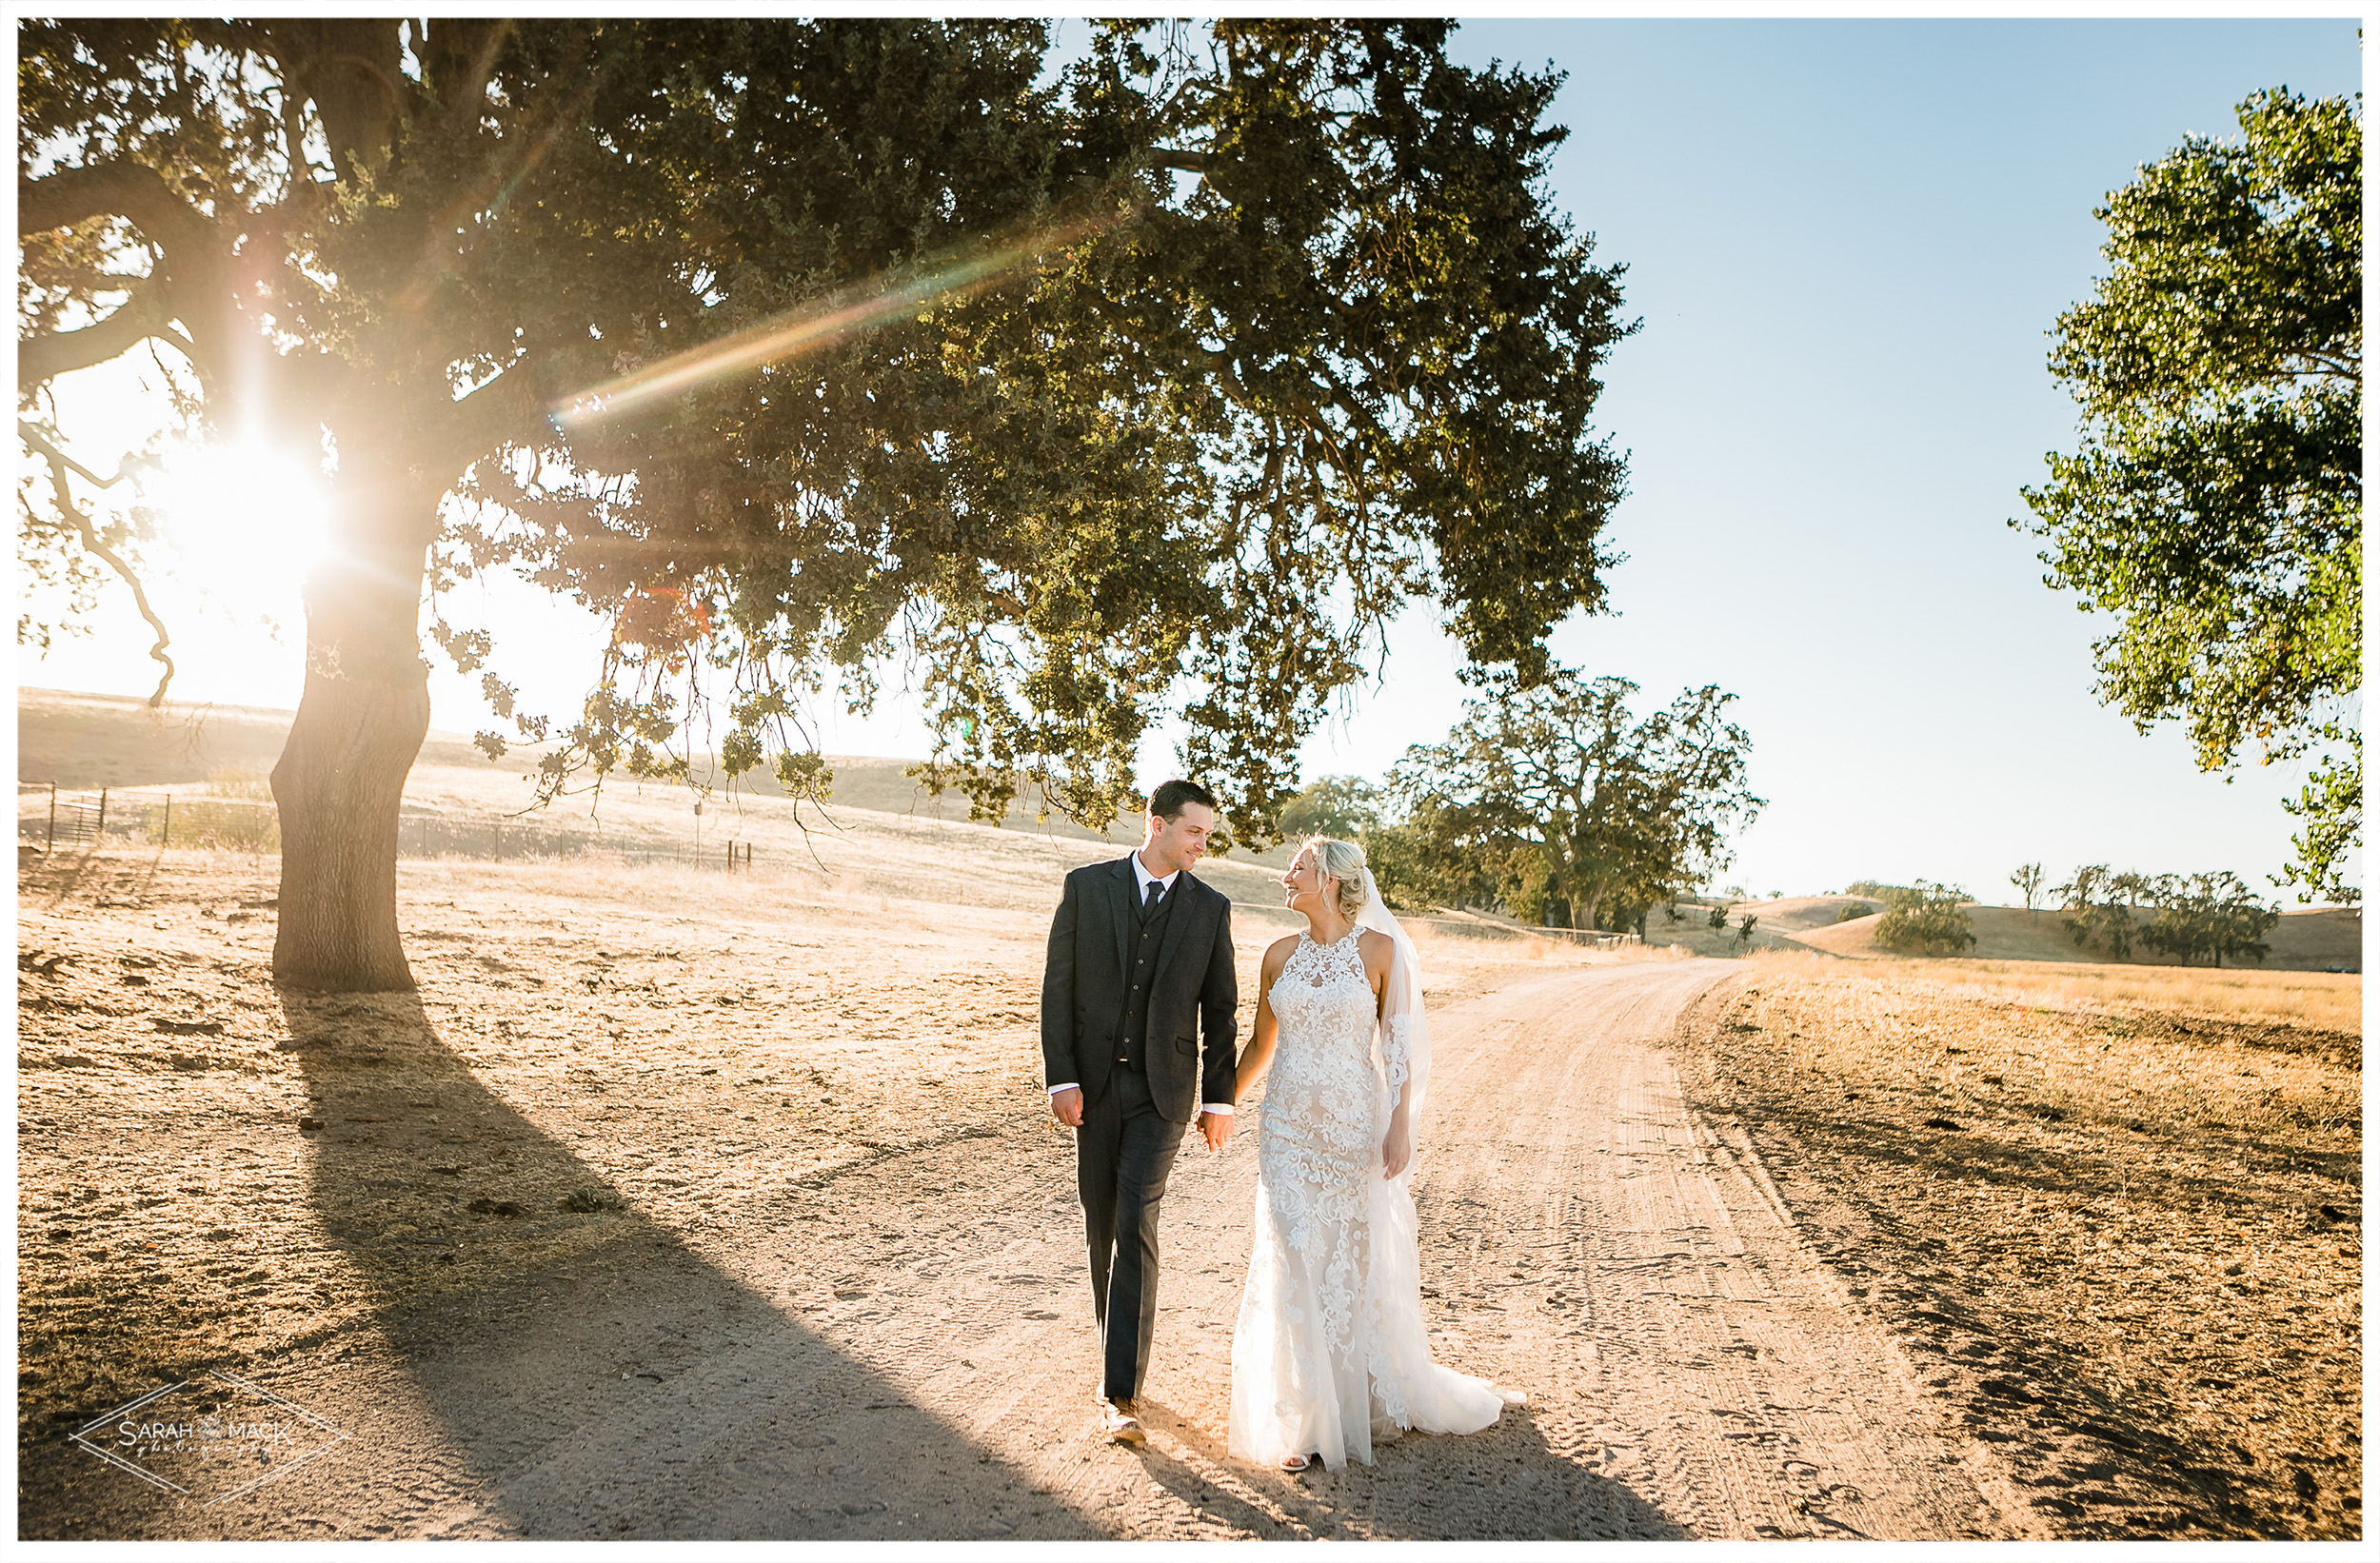 MA-Chandler-Ranch-Paso-Robles-Wedding-Photography-44.jpg